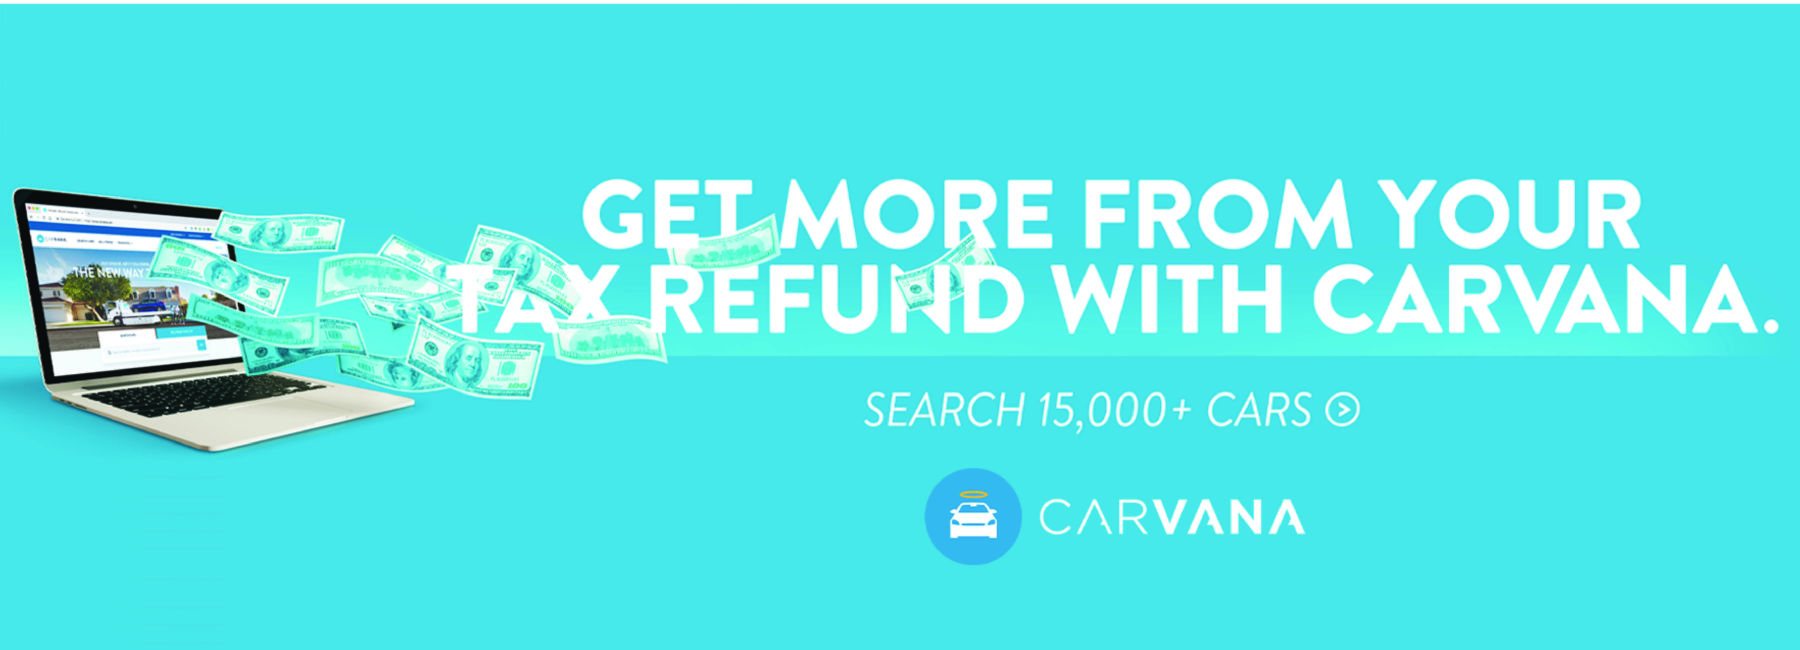 Get More From Carvana With Tax Refund